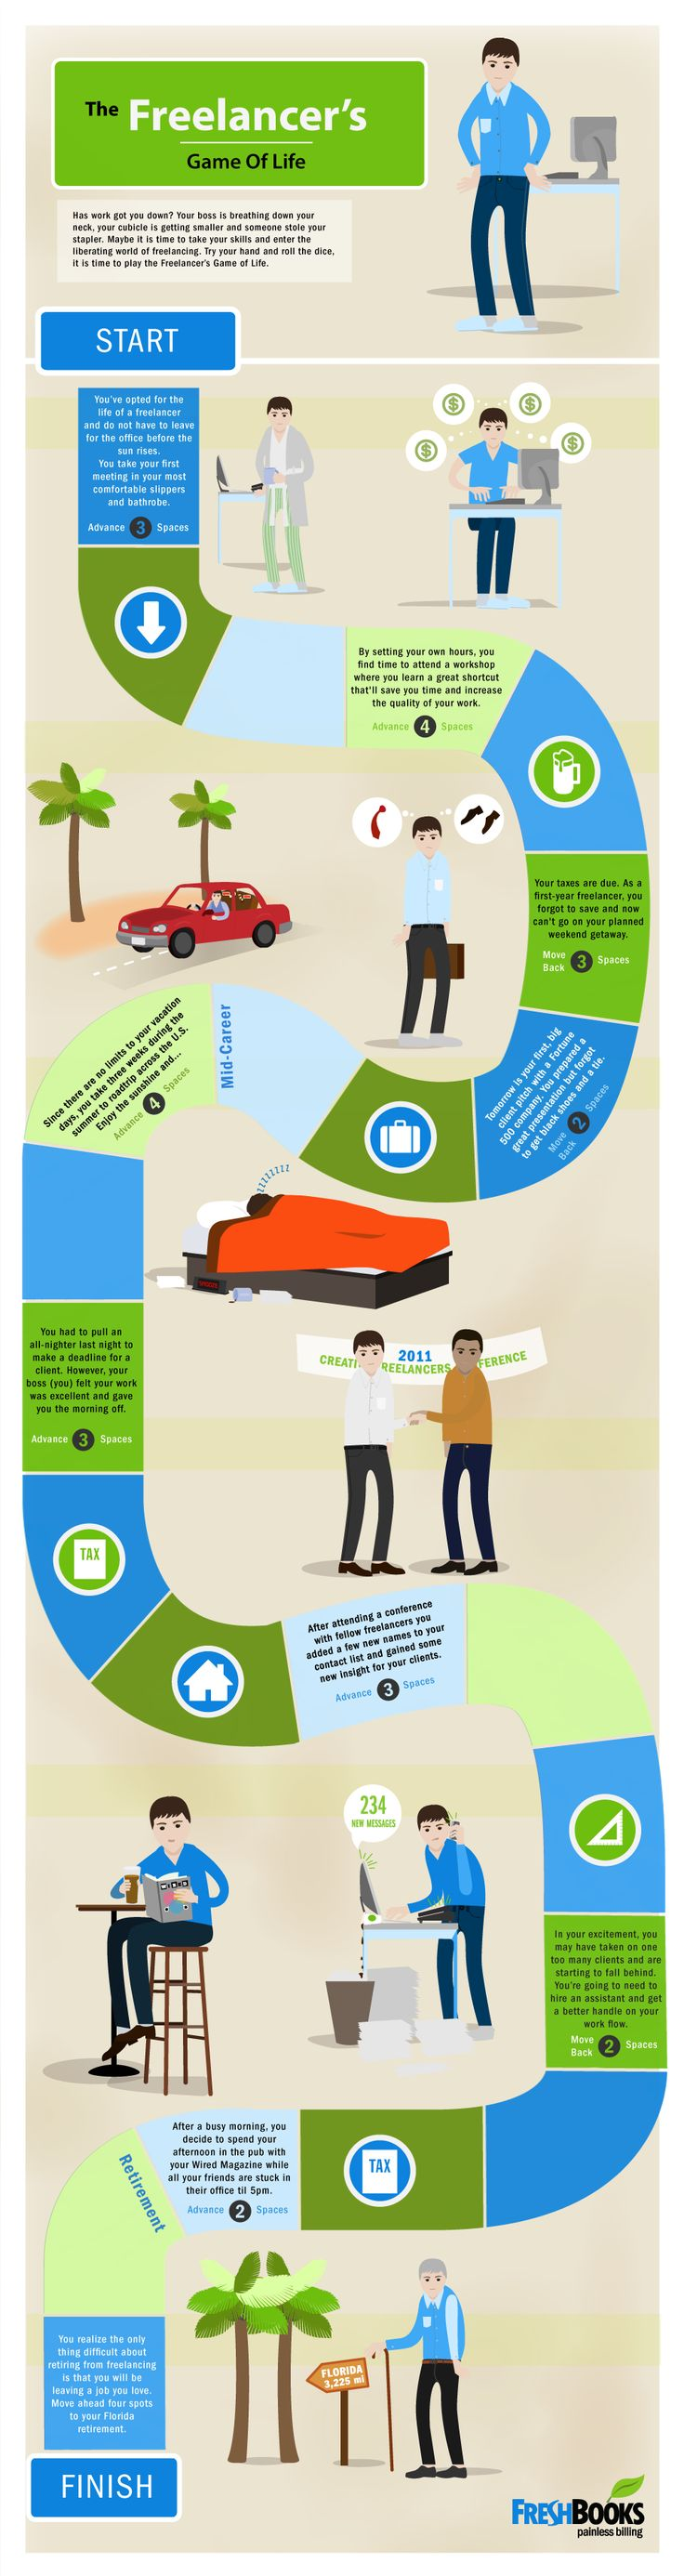 The Freelancer's game of life. #freshbooks #infographic